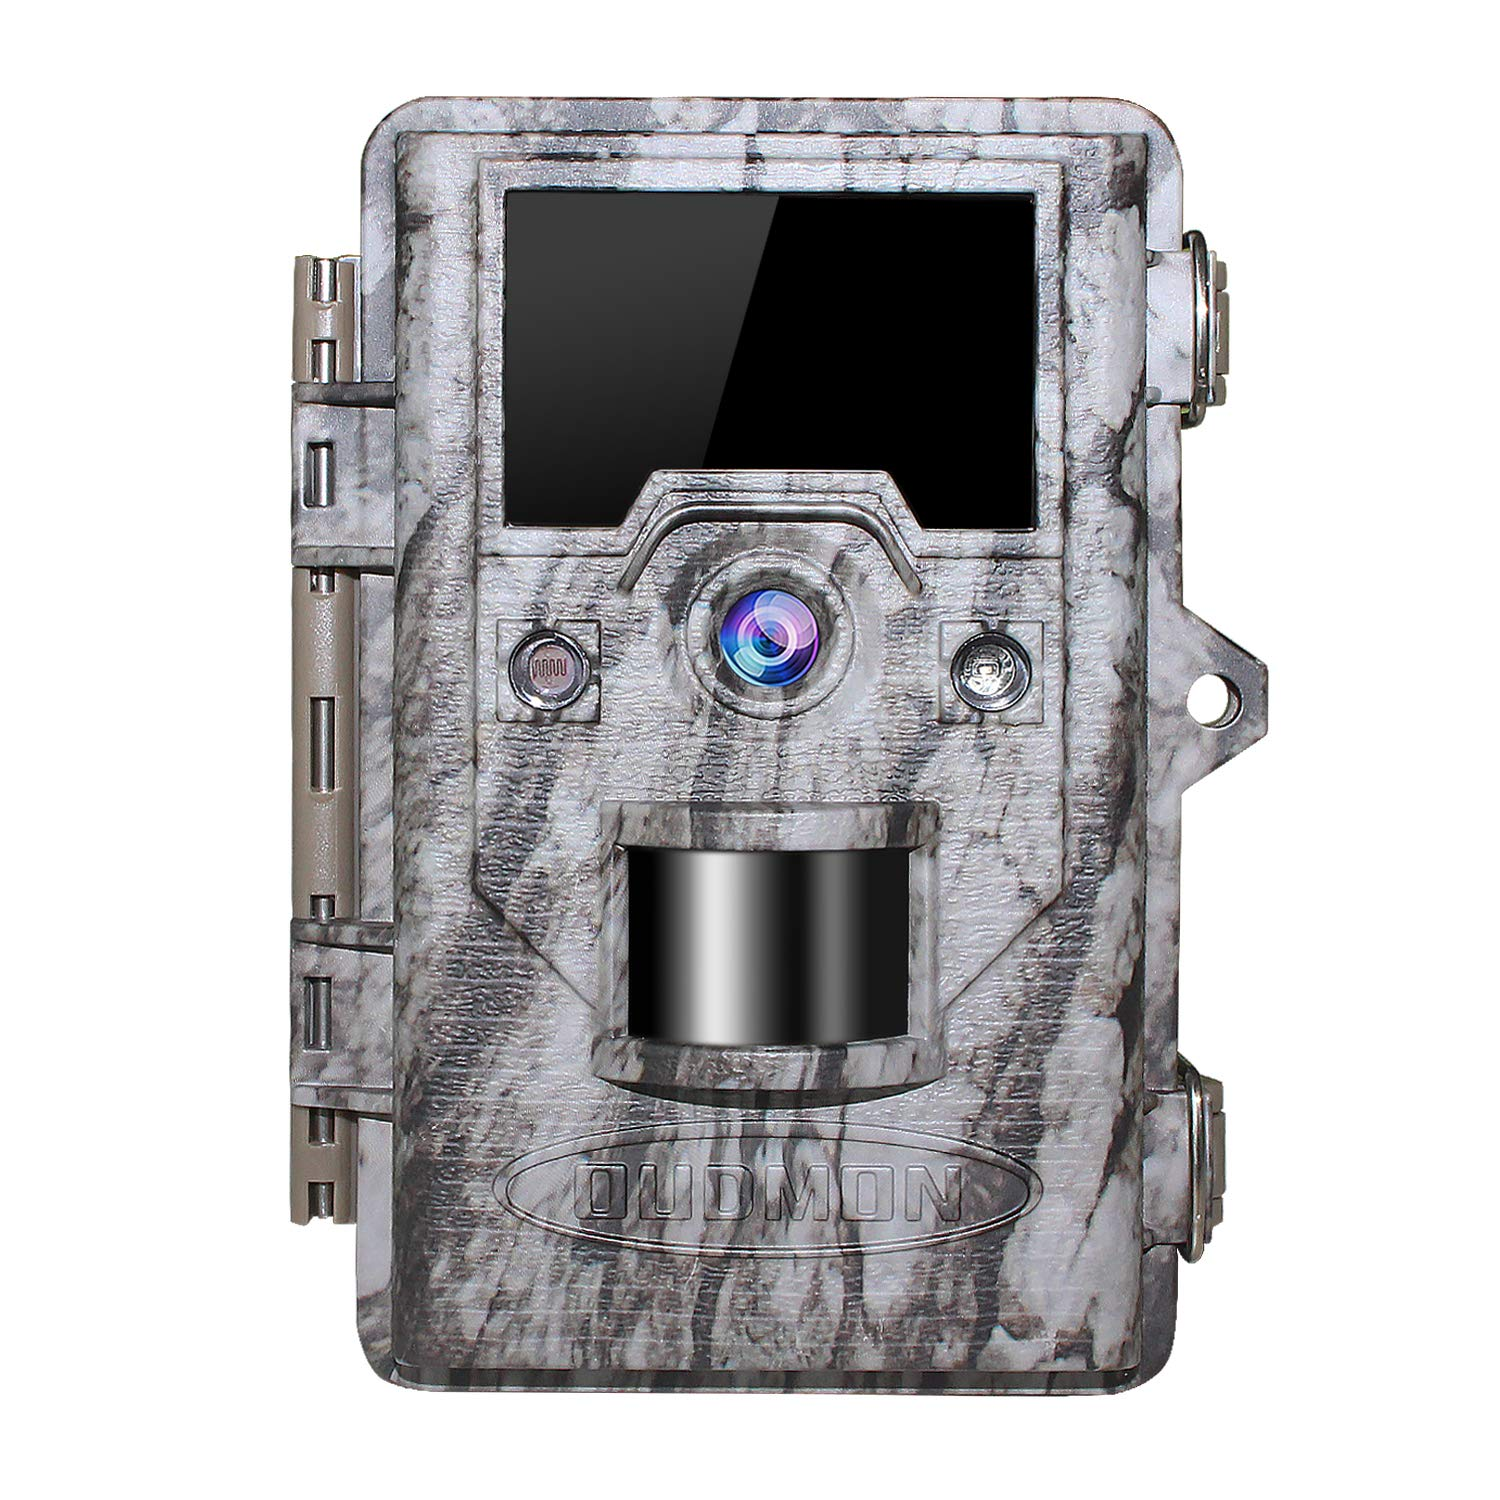 OUDMON Trail Game Camera 16MP 1080p 30fps FHD IP67 Waterproof Wildlife Scouting Hunting Cam with 940nm 48Pcs No Glow IR LEDs Motion Activated Night Vision 2.4'' LCD by OUDMON